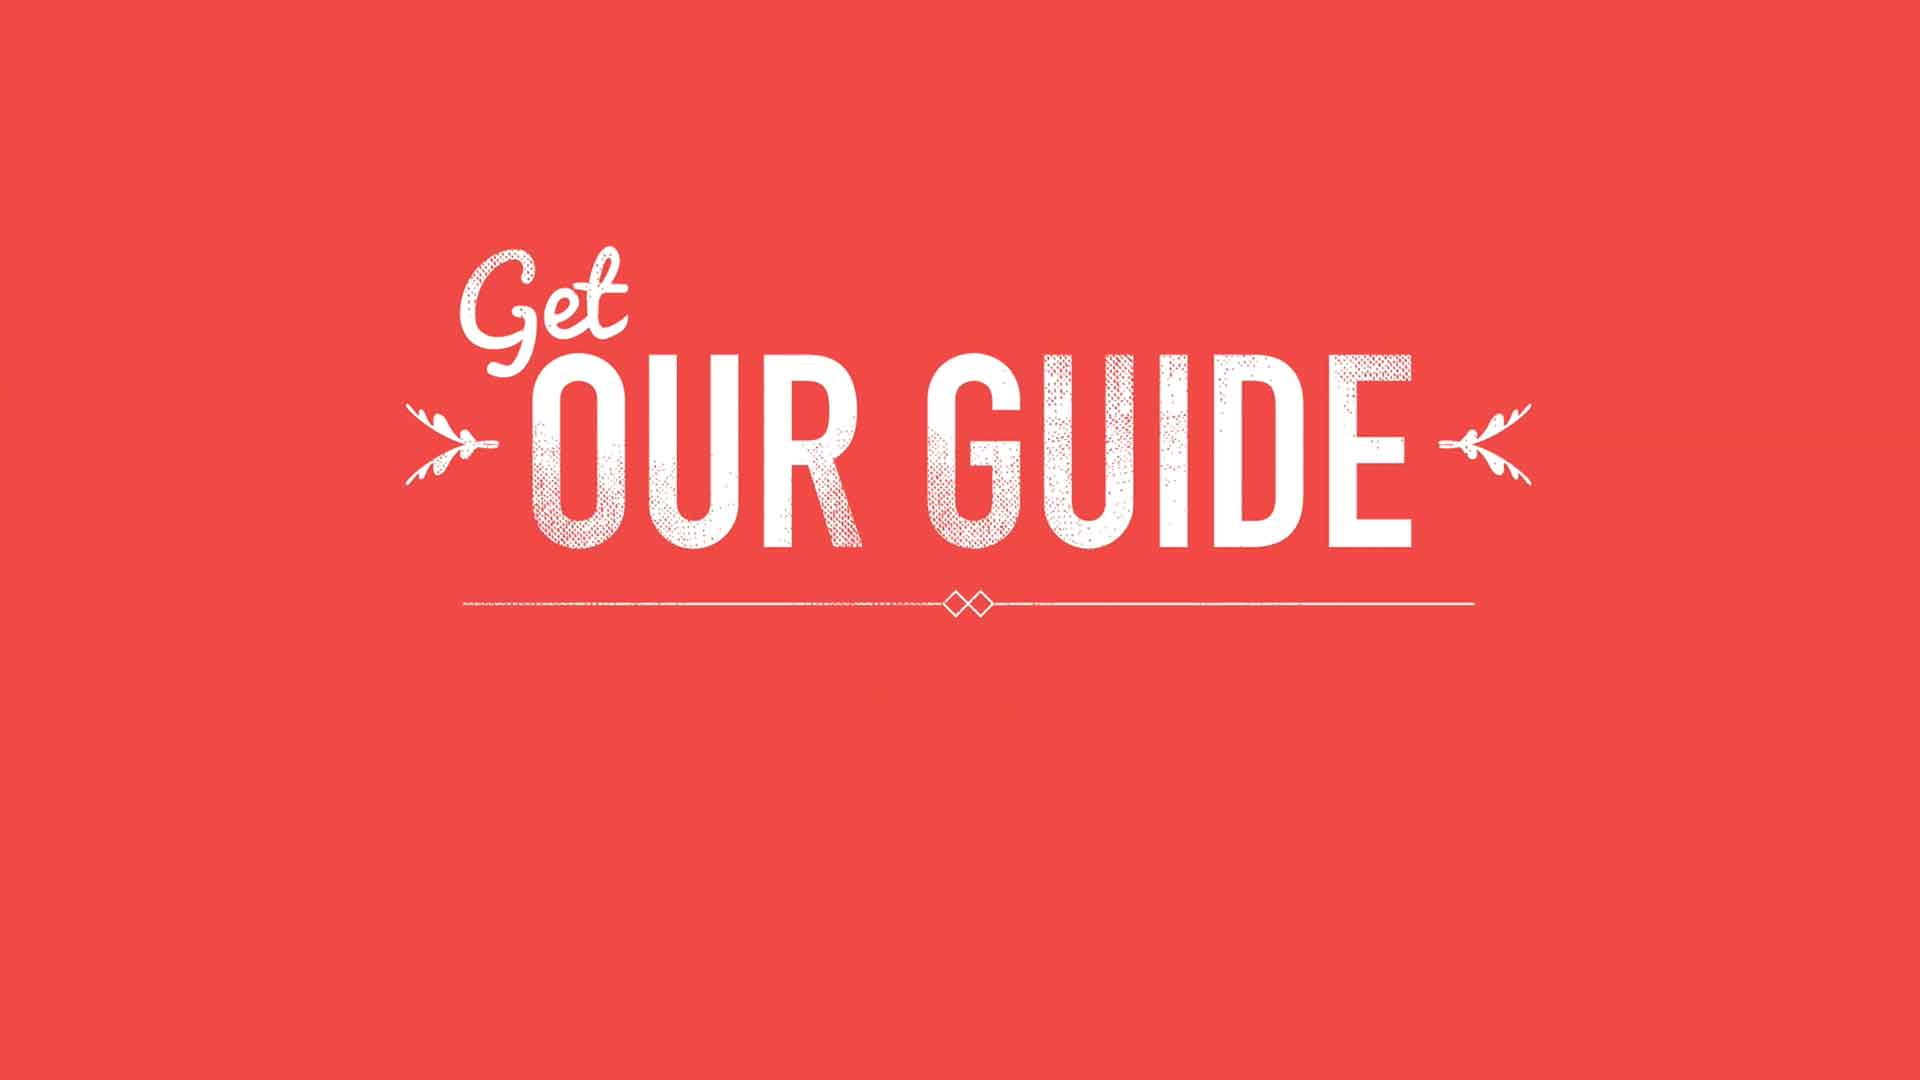 Our Guide Marketing Video Production Commercial